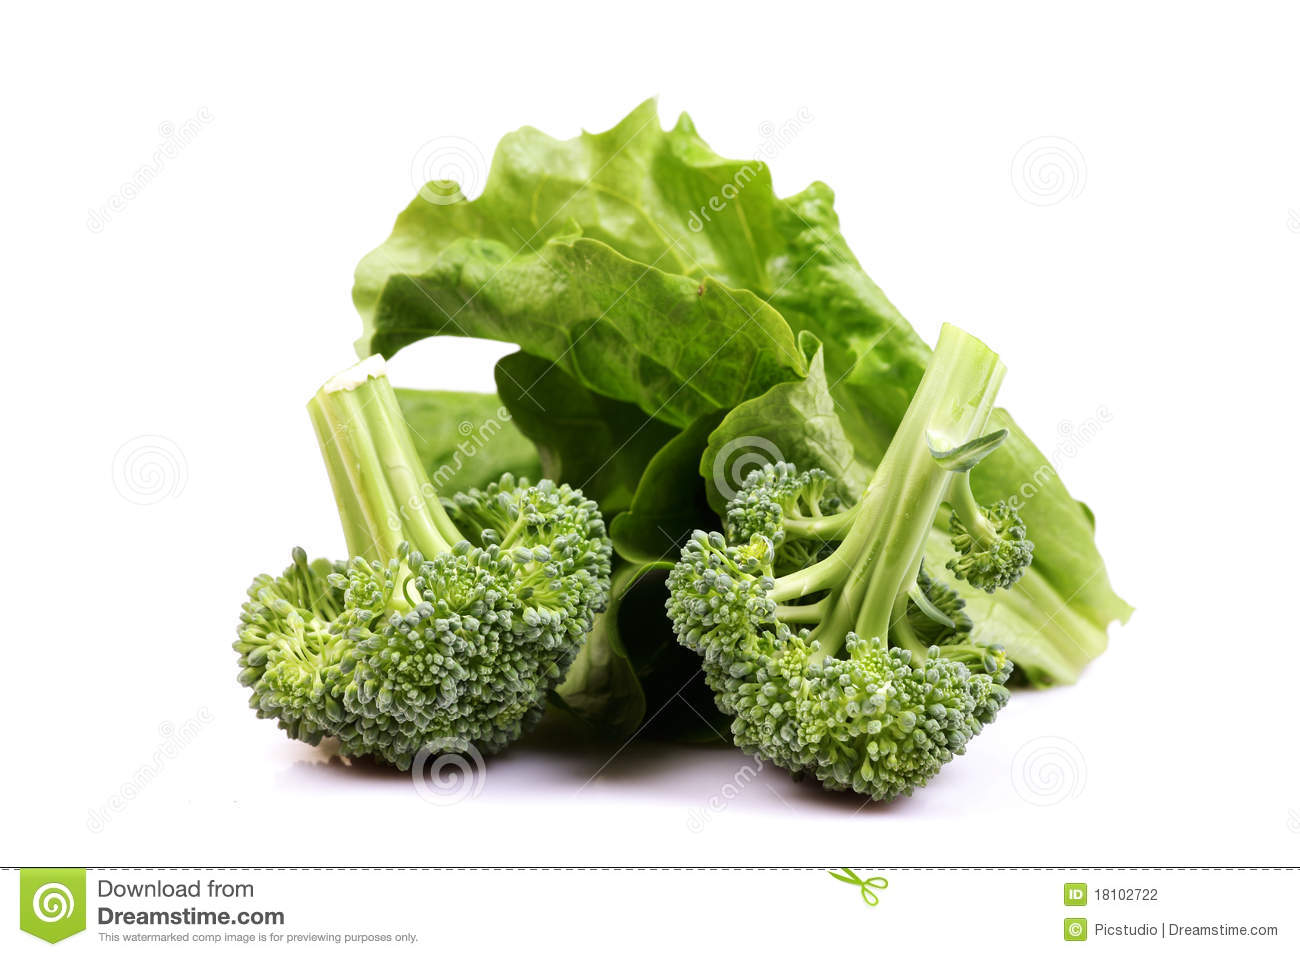 10 Powerful Advantages of Eating Lettuce